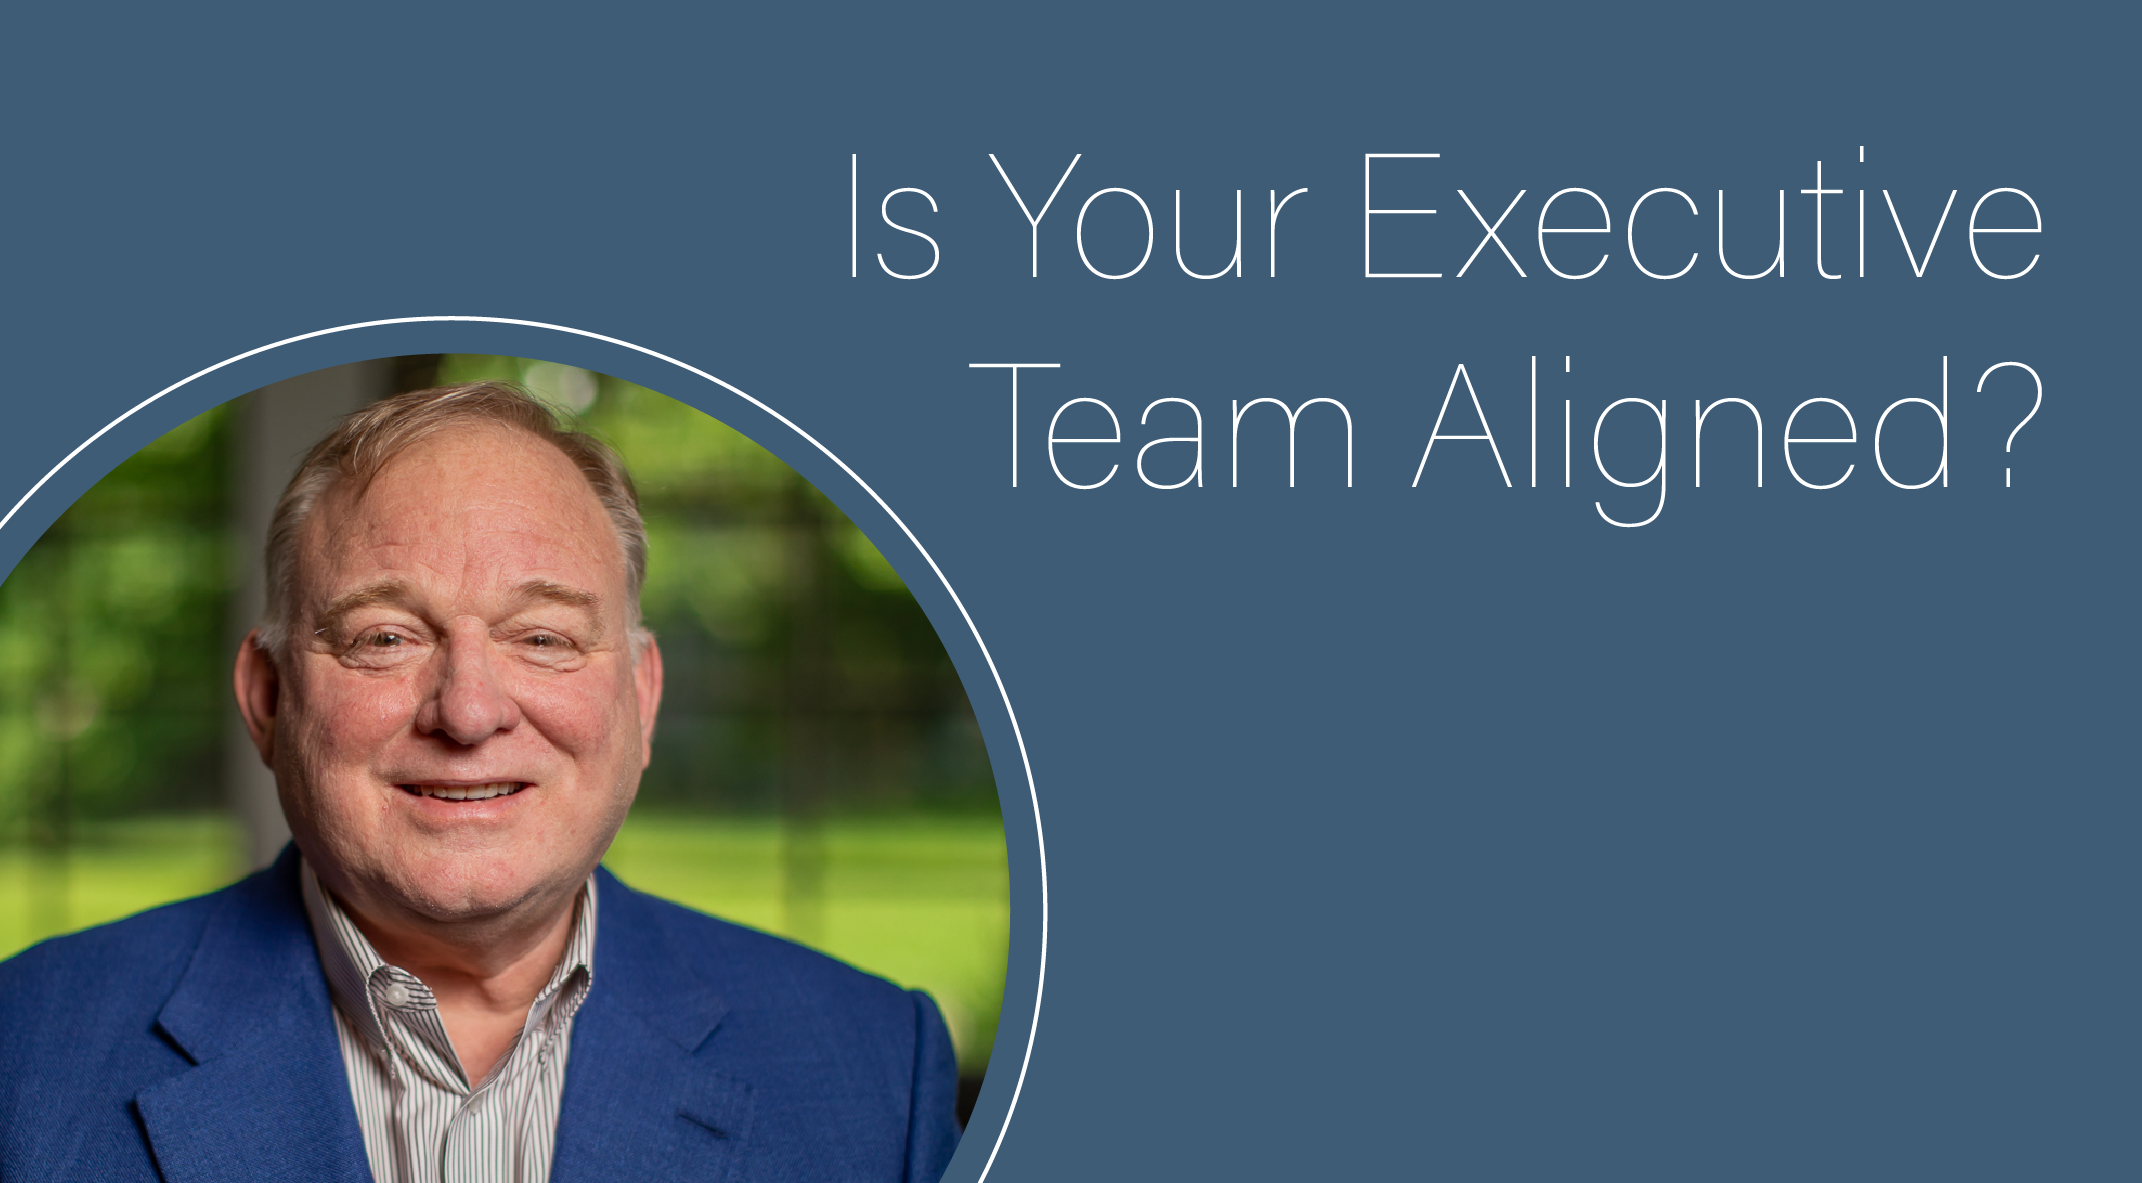 Is Your Executive Team Aligned?